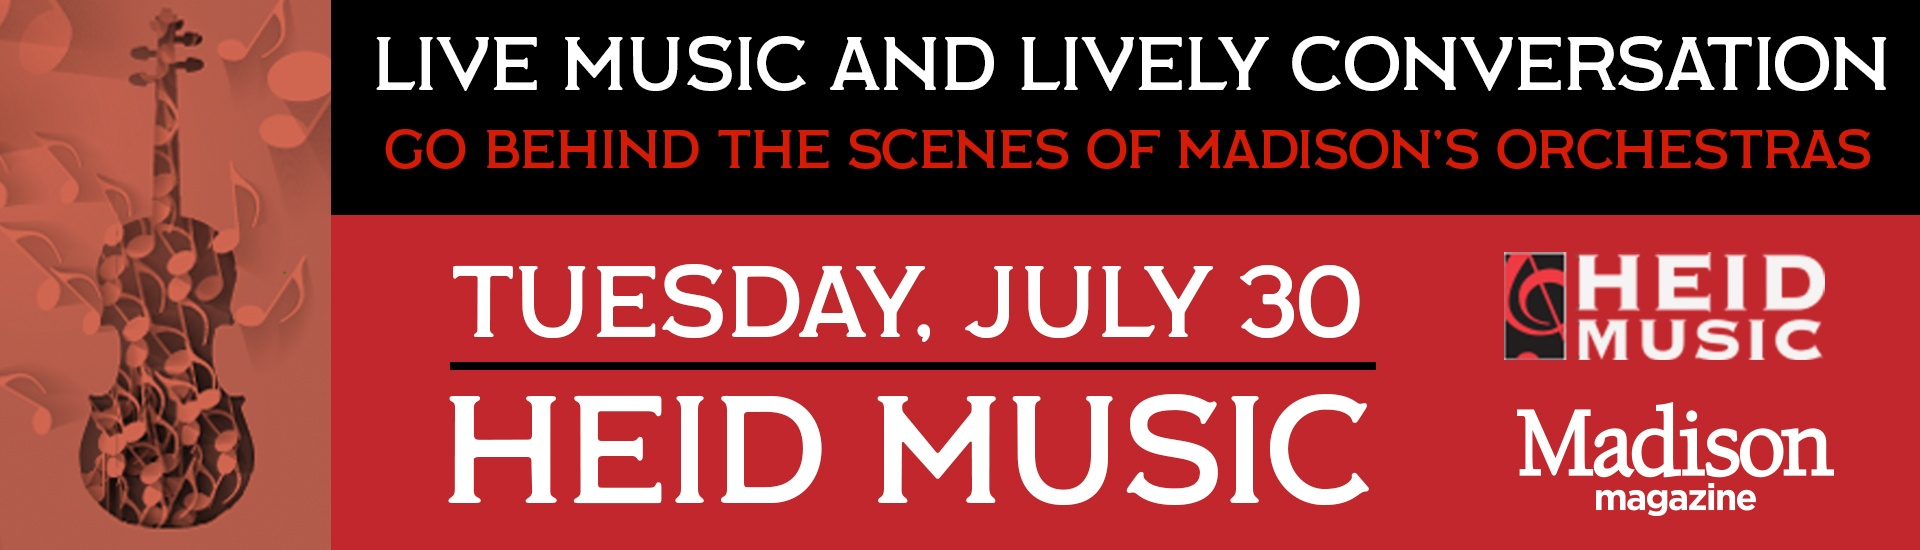 Live music and conversation Madison Orchestra